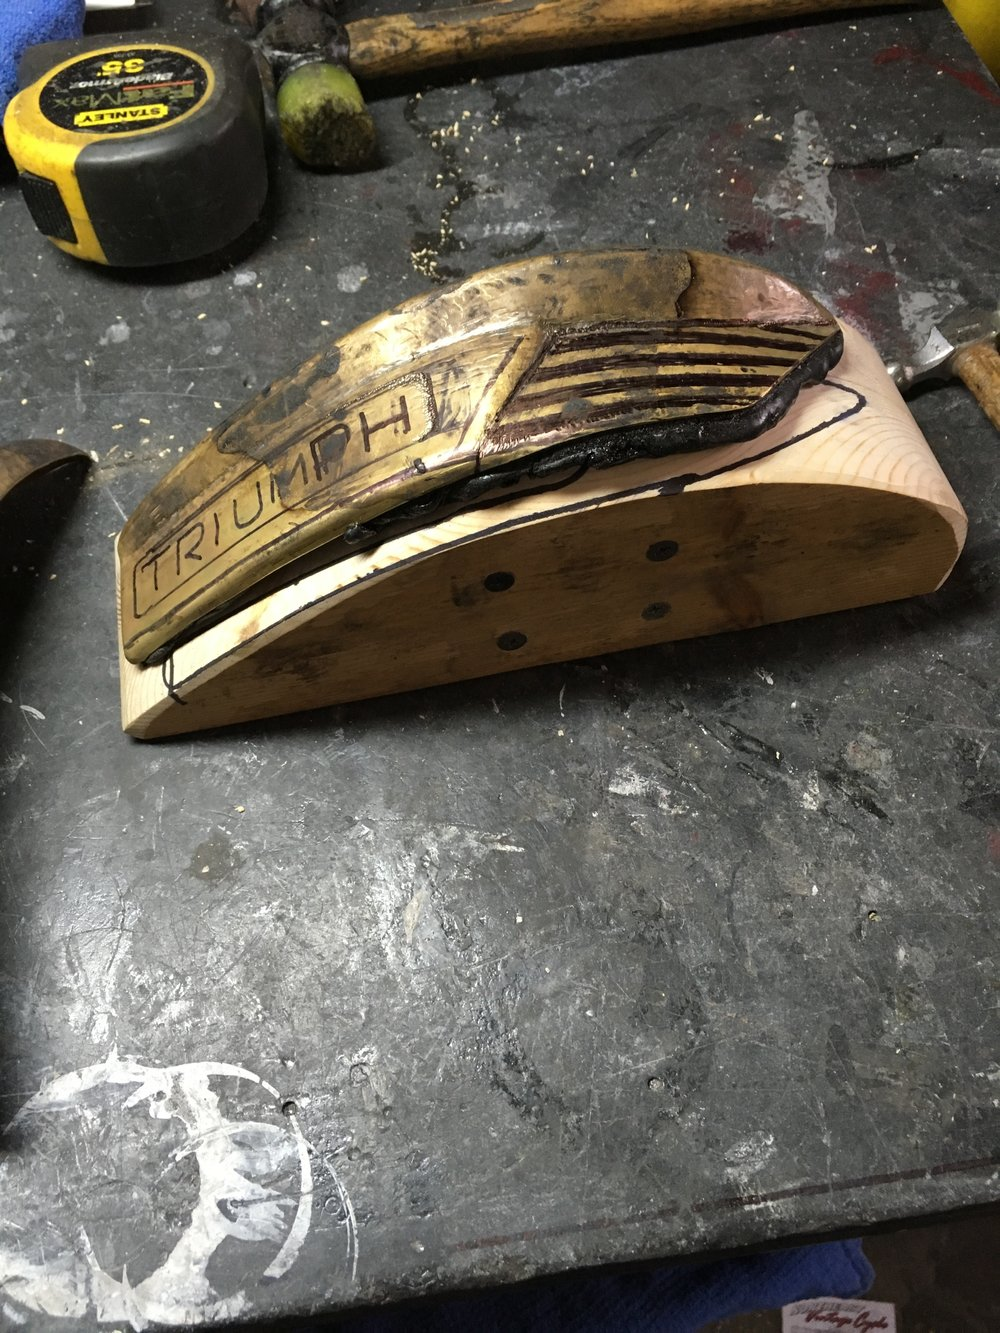 A buck was made of wood to fit the contour of the pieces. The back of the piece was filled with pitch and then laid on top.